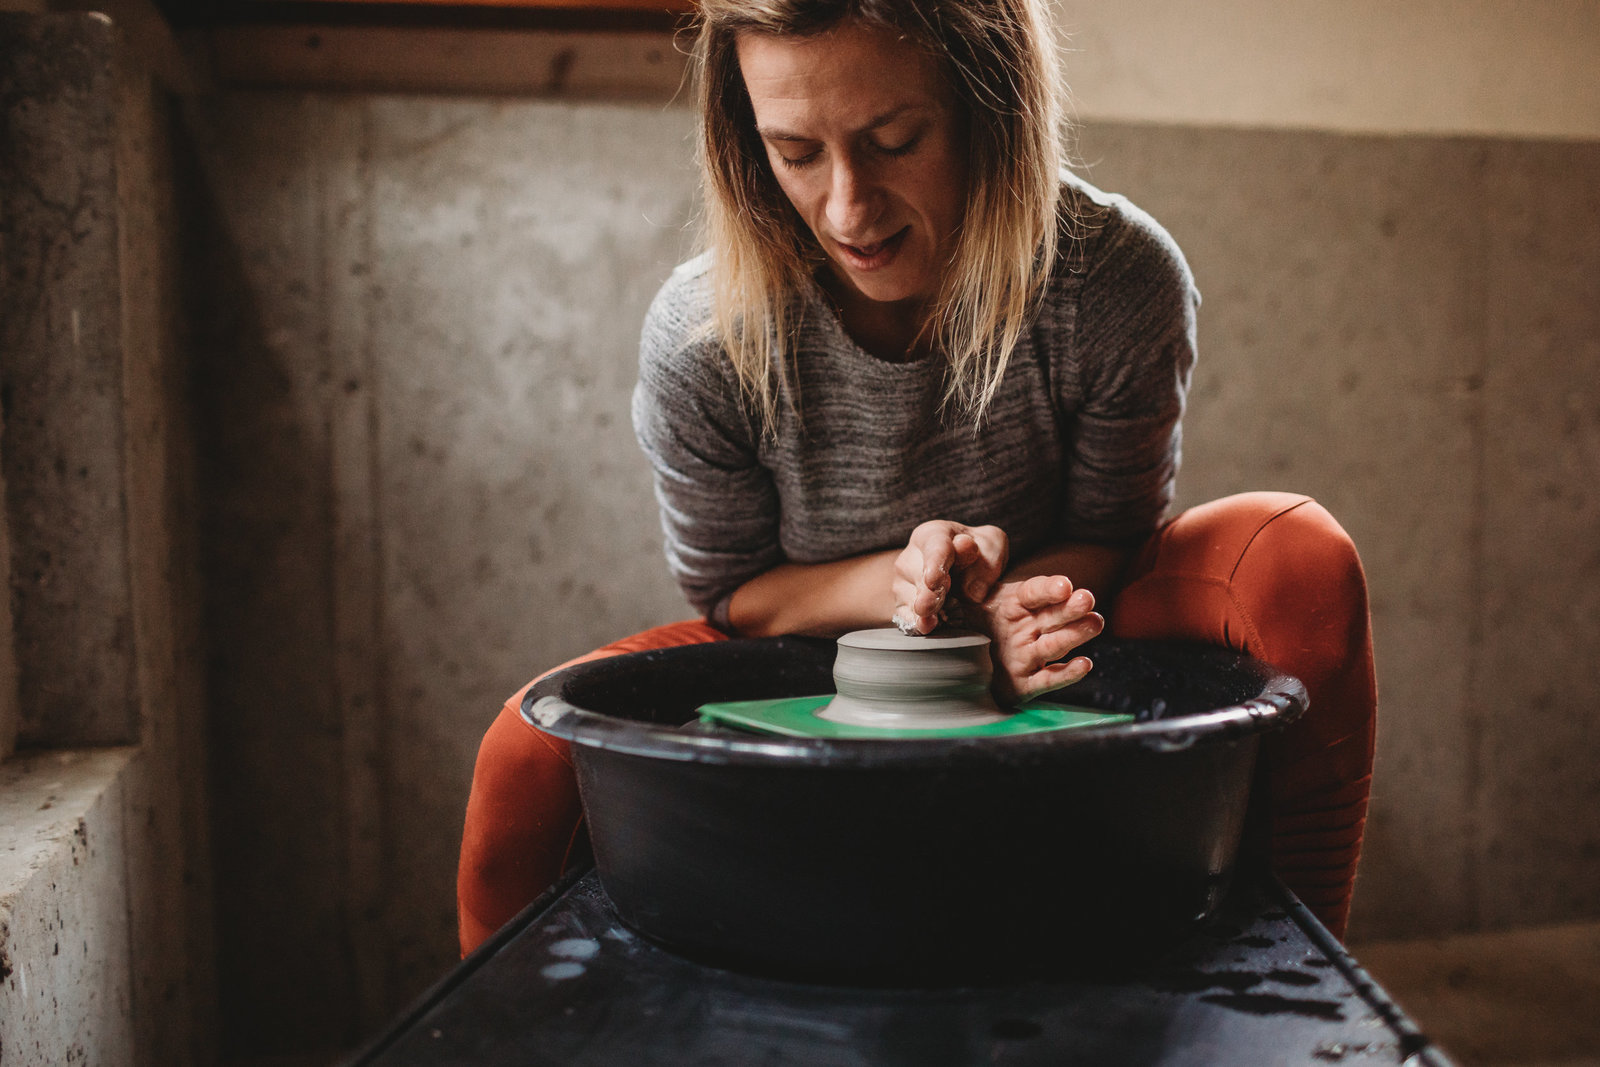 woman shapes clay on wheel in basement workshop